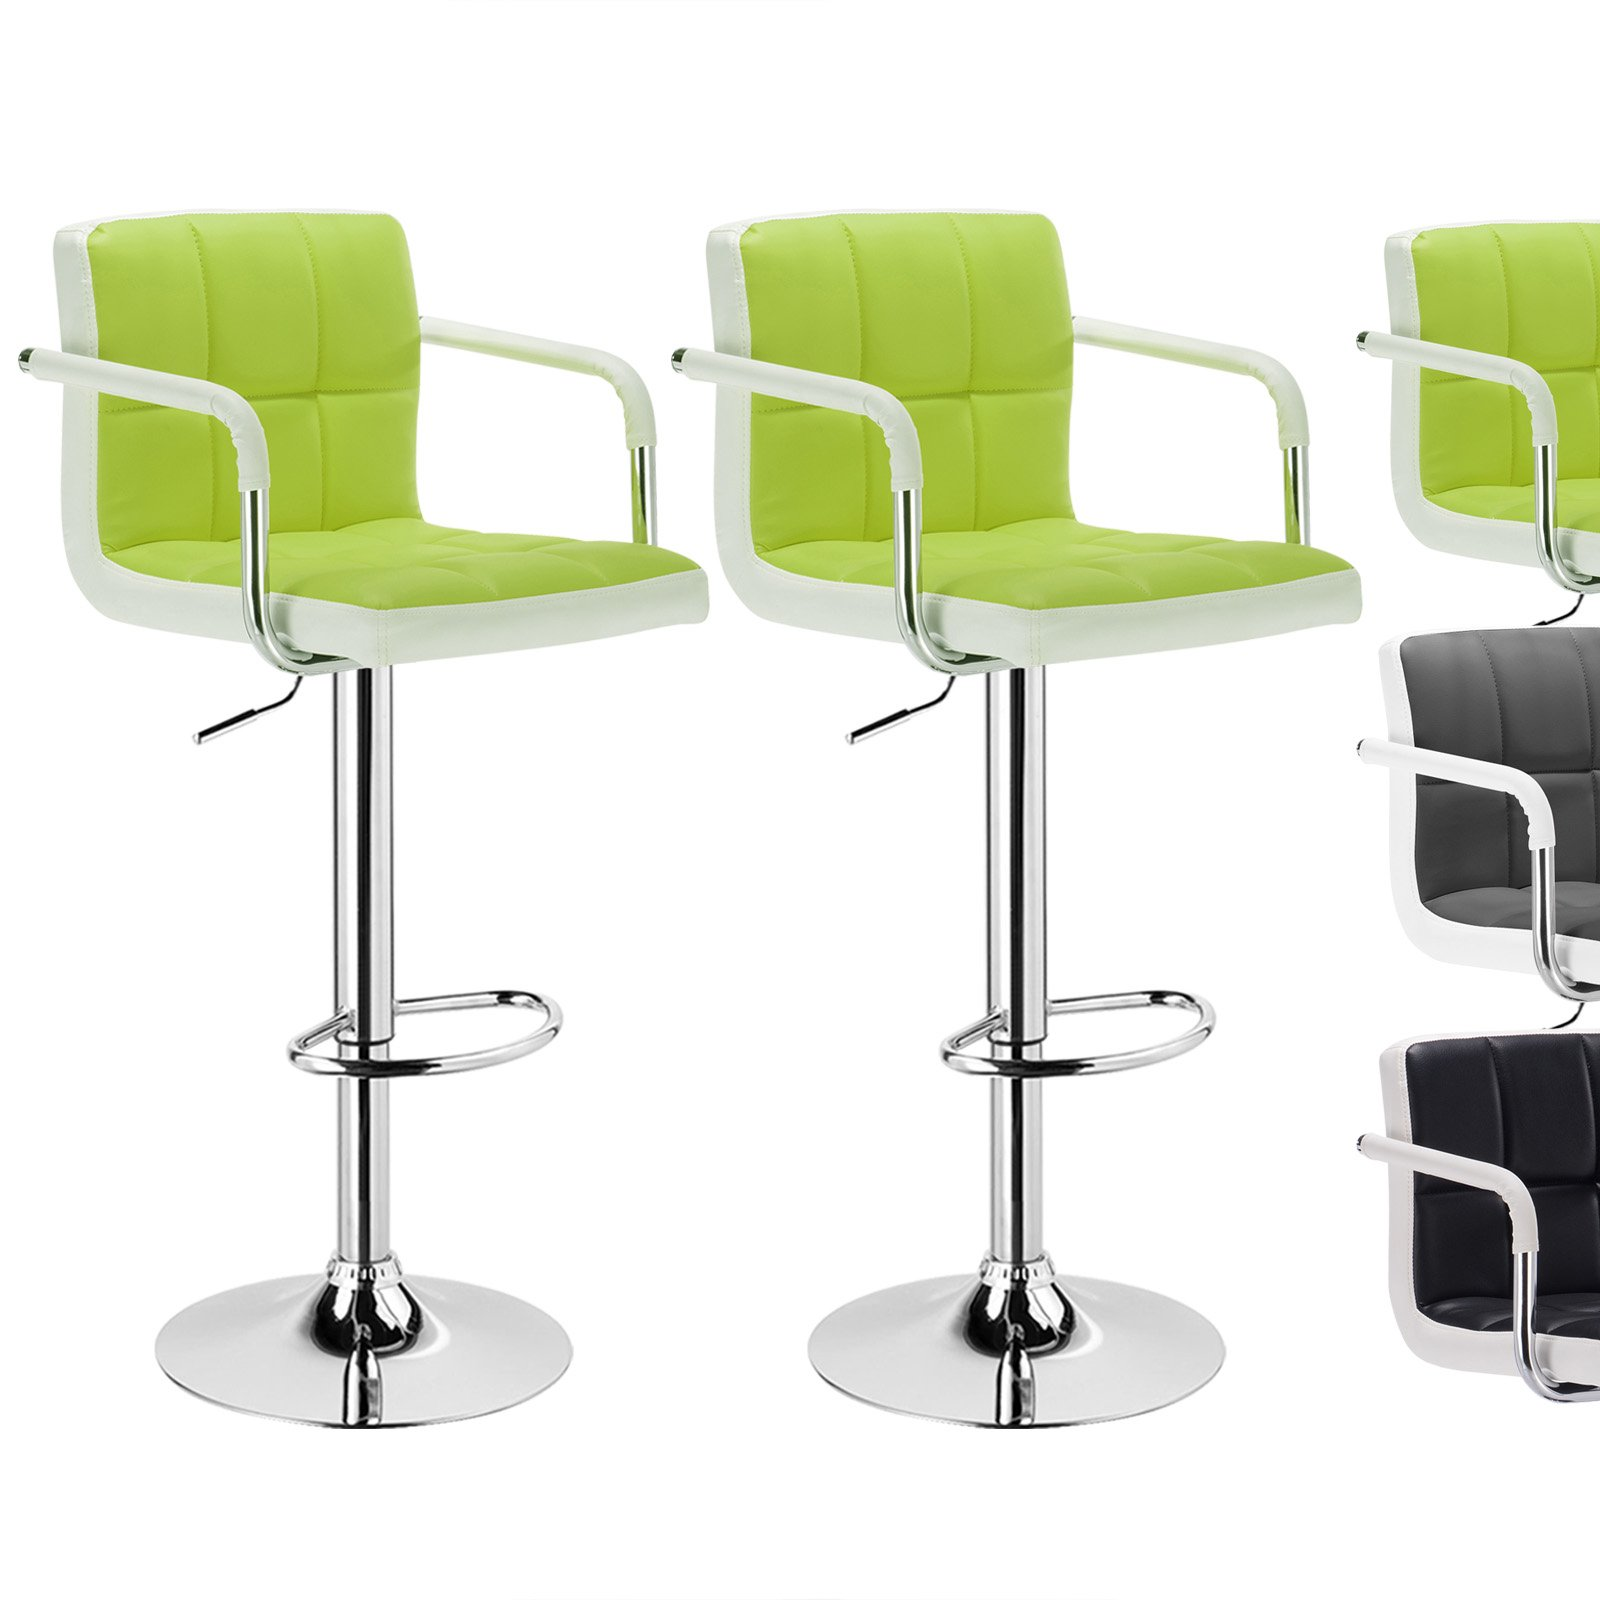 Marvelous Cheap Green Leather Bar Stools Find Green Leather Bar Short Links Chair Design For Home Short Linksinfo